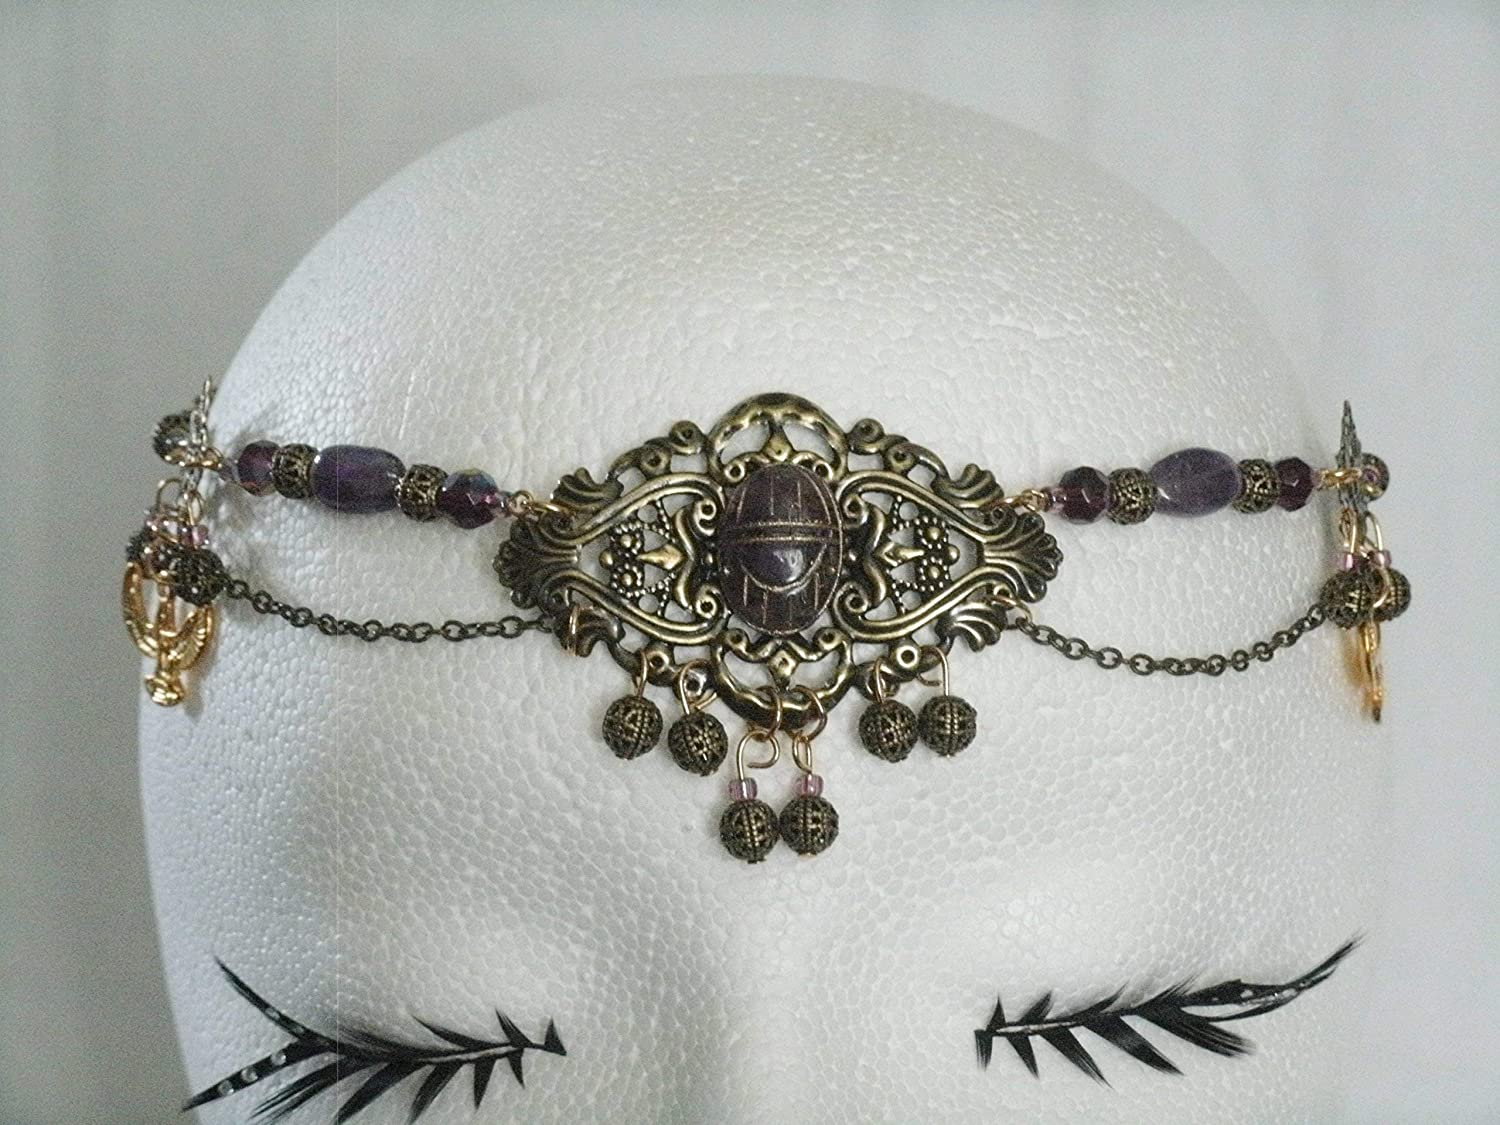 Scarab Amethyst Circlet handmade jewelry wiccan pagan wicca witch witchcraft metaphysical goddess headpiece